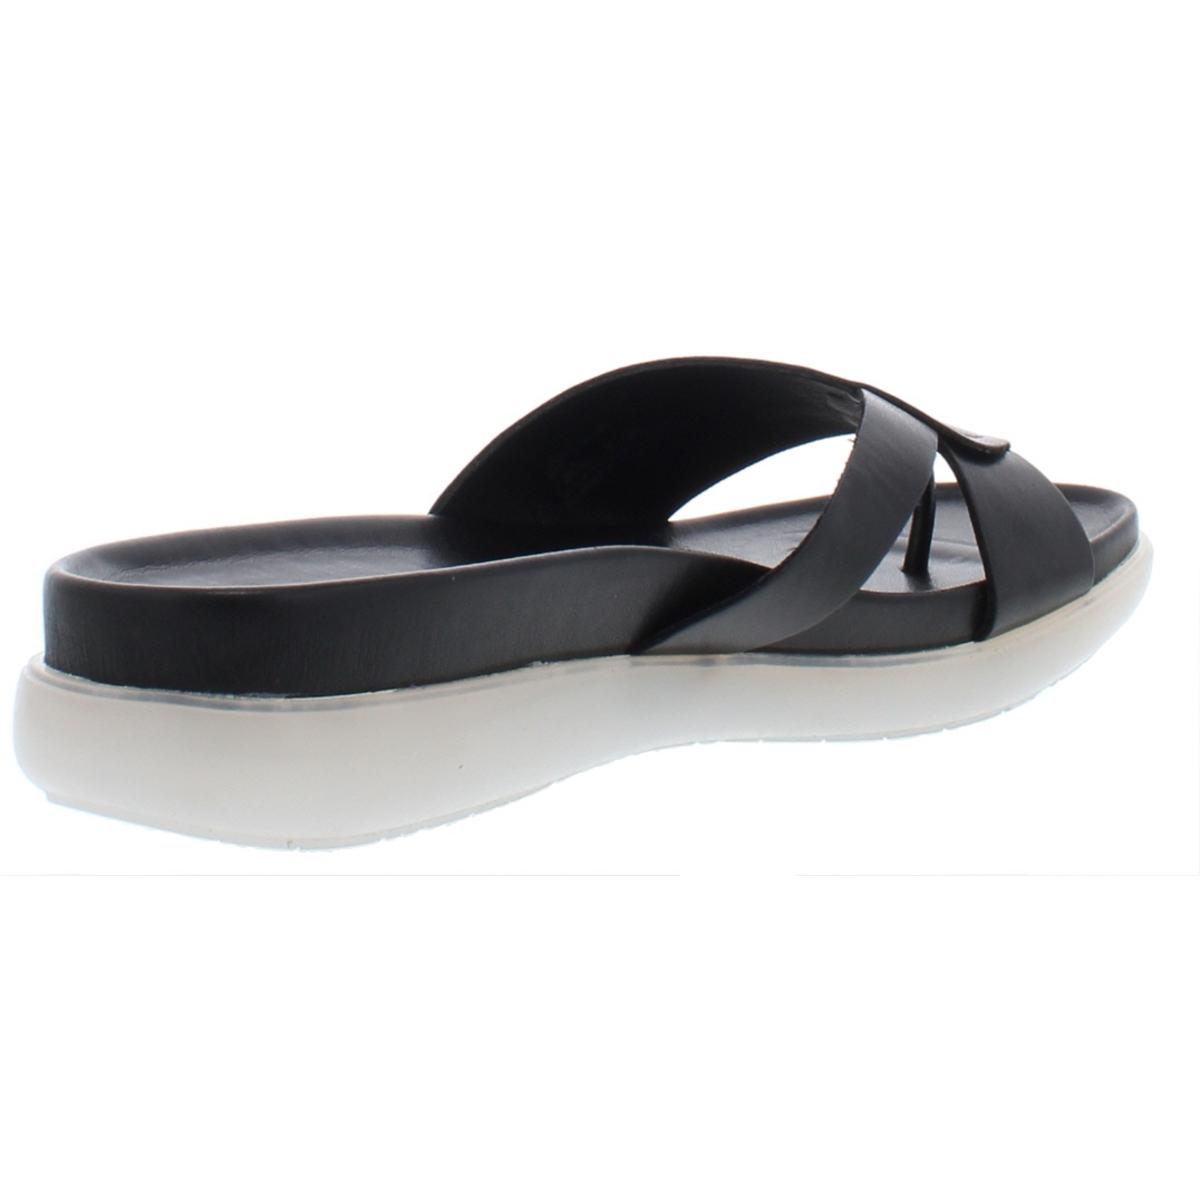 Donald-J-Pliner-Womens-Hollie-Metallic-Platform-Slide-Sandals-Shoes-BHFO-6210 thumbnail 4